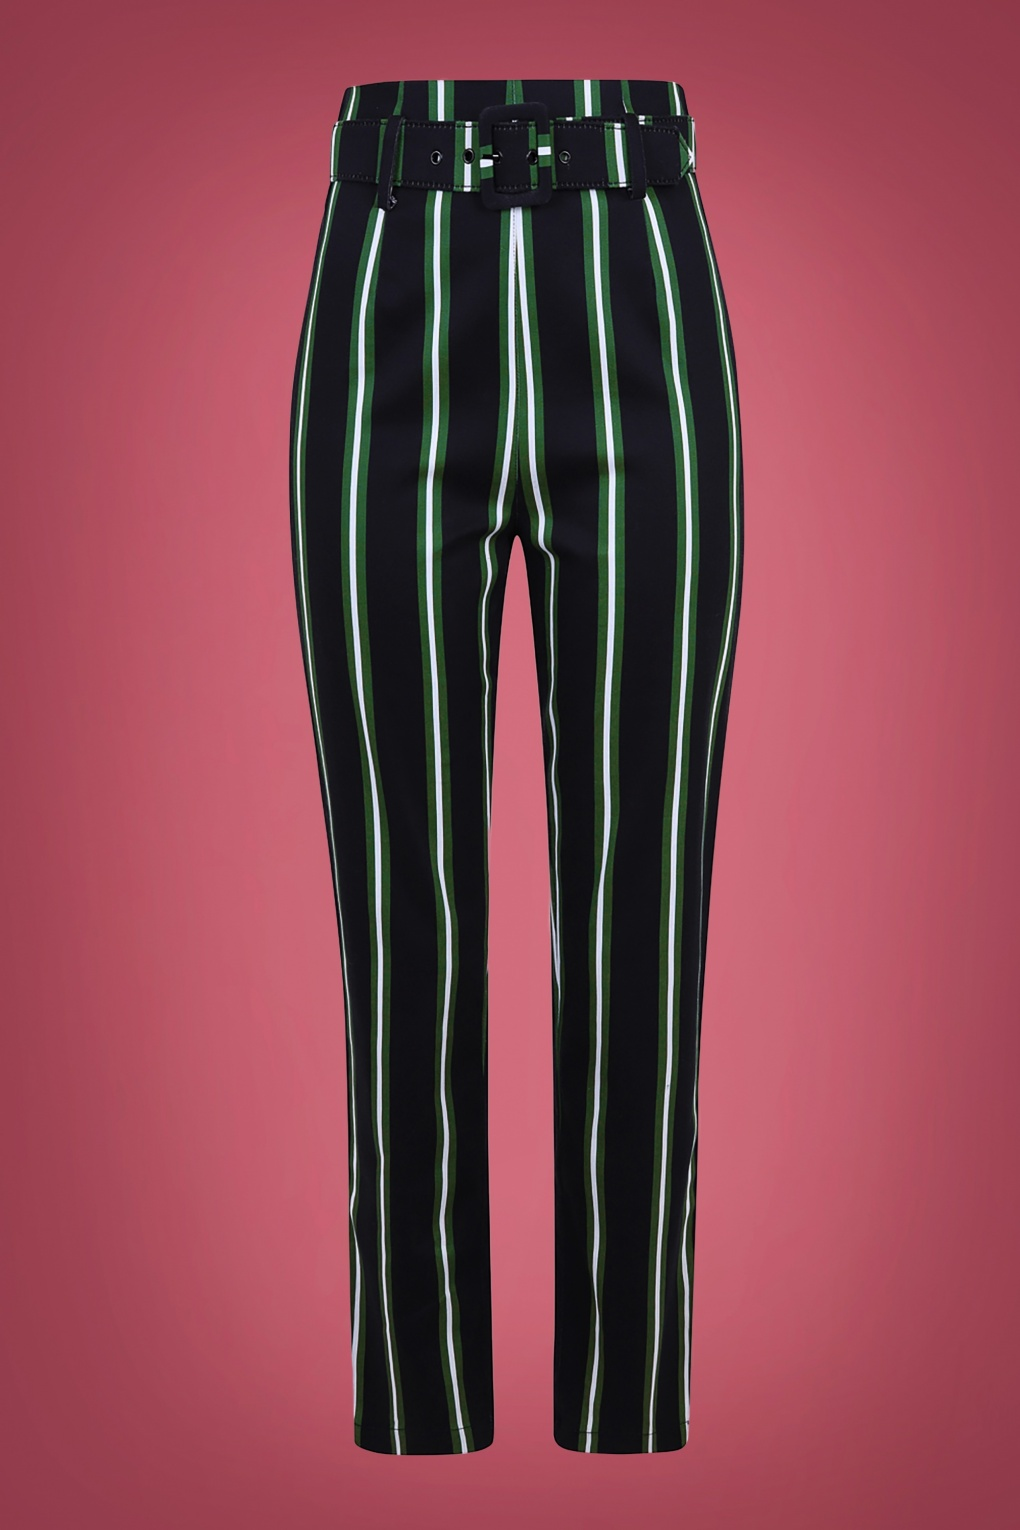 1950s Pants & Jeans- High Waist, Wide Leg, Capri, Pedal Pushers 50s Thea Witch Stripes Trousers in Black £49.56 AT vintagedancer.com